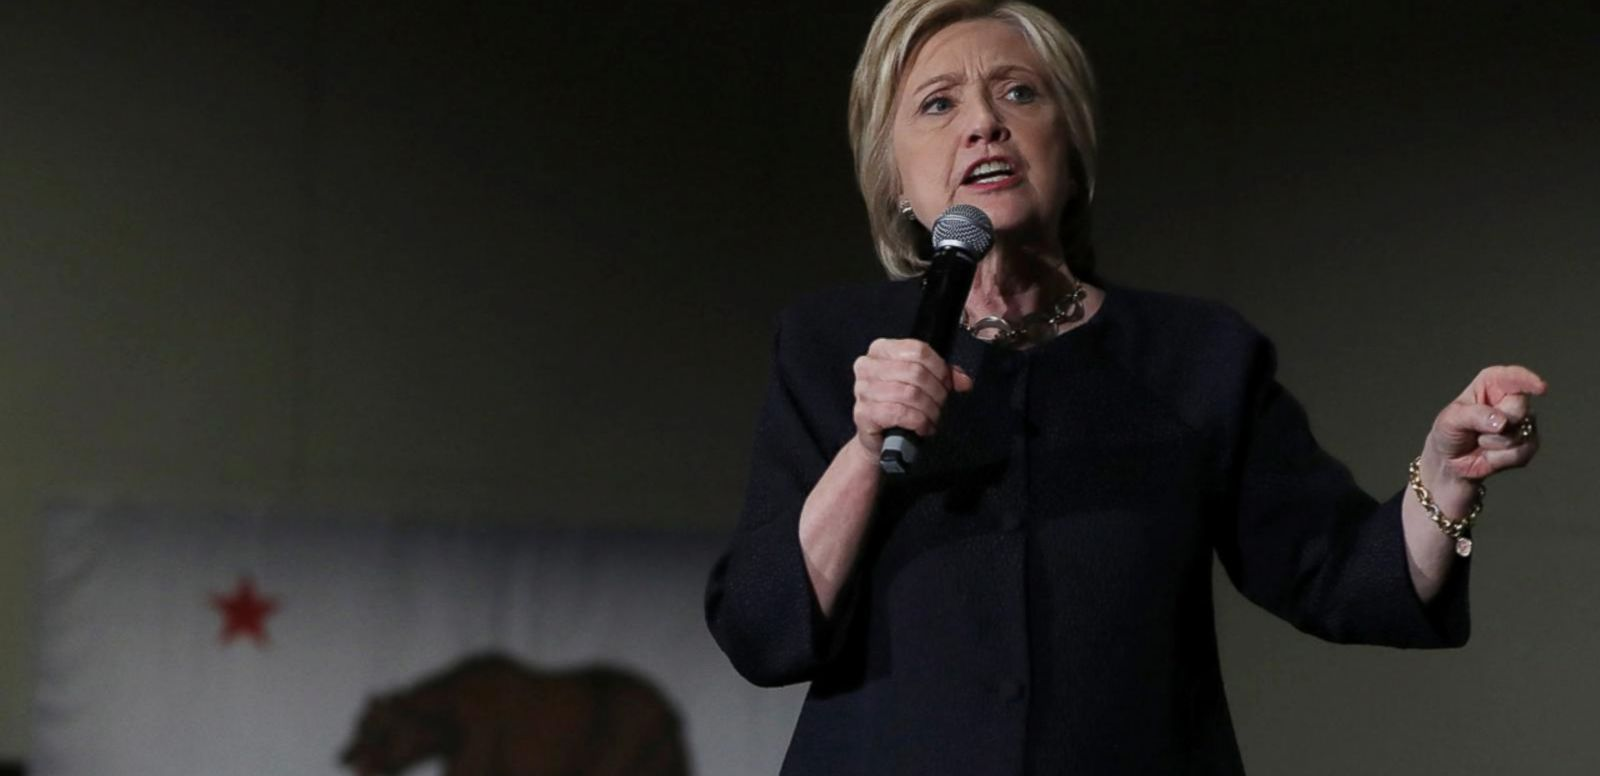 VIDEO: Hillary Clinton Chimes In on the Trump Tirade